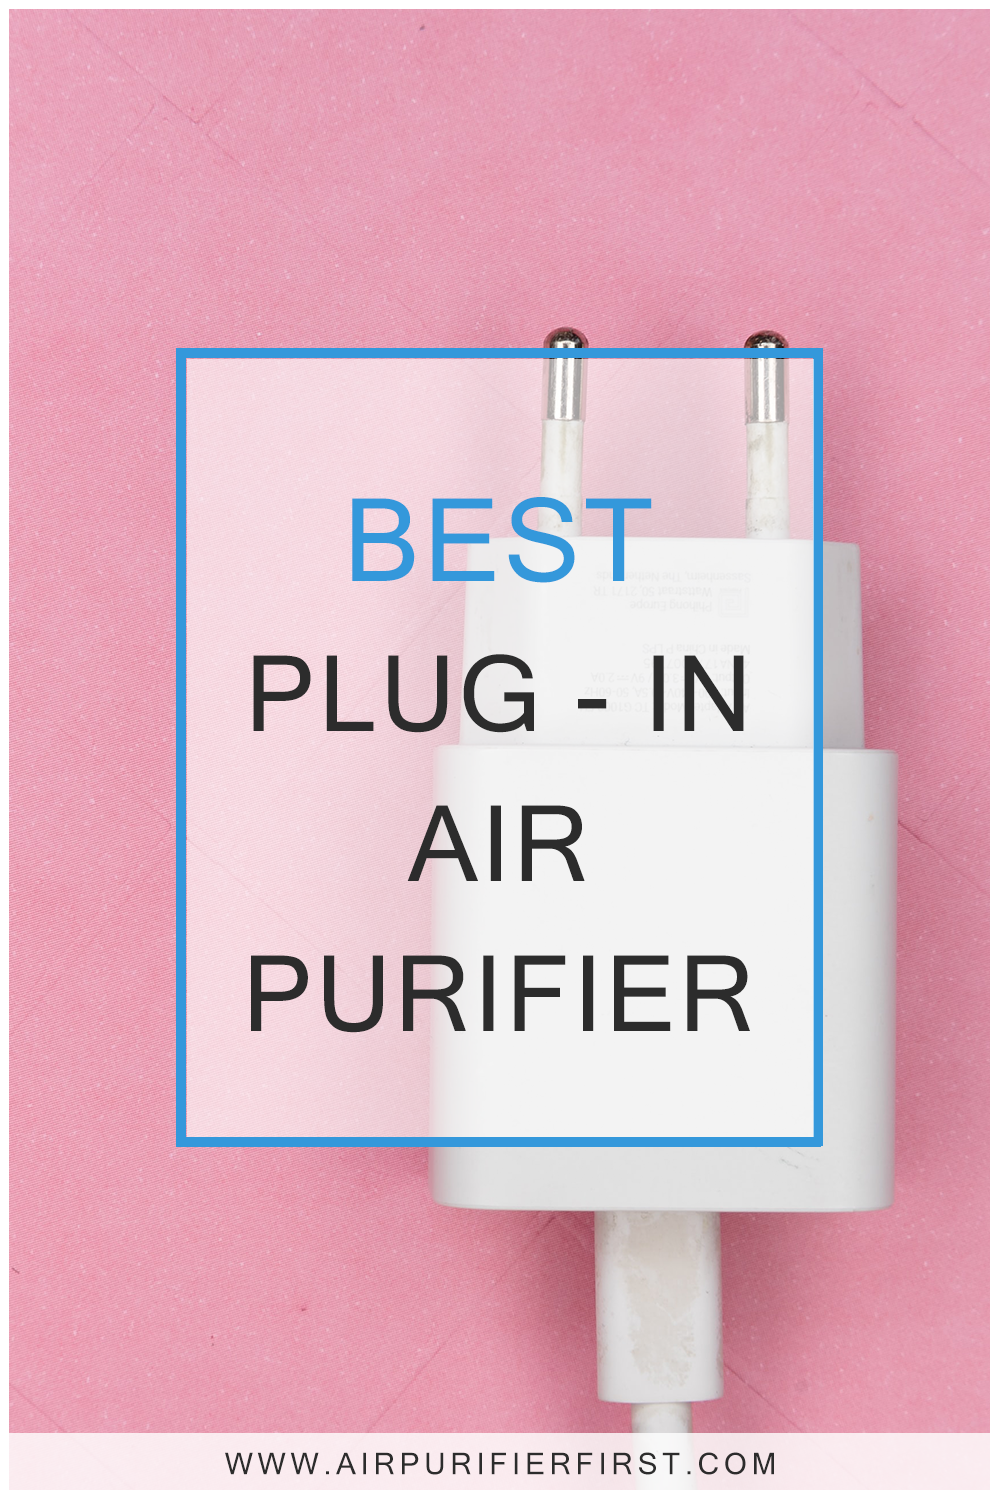 Best PlugIn Air Purifiers [2020 in 2020 Air purifier